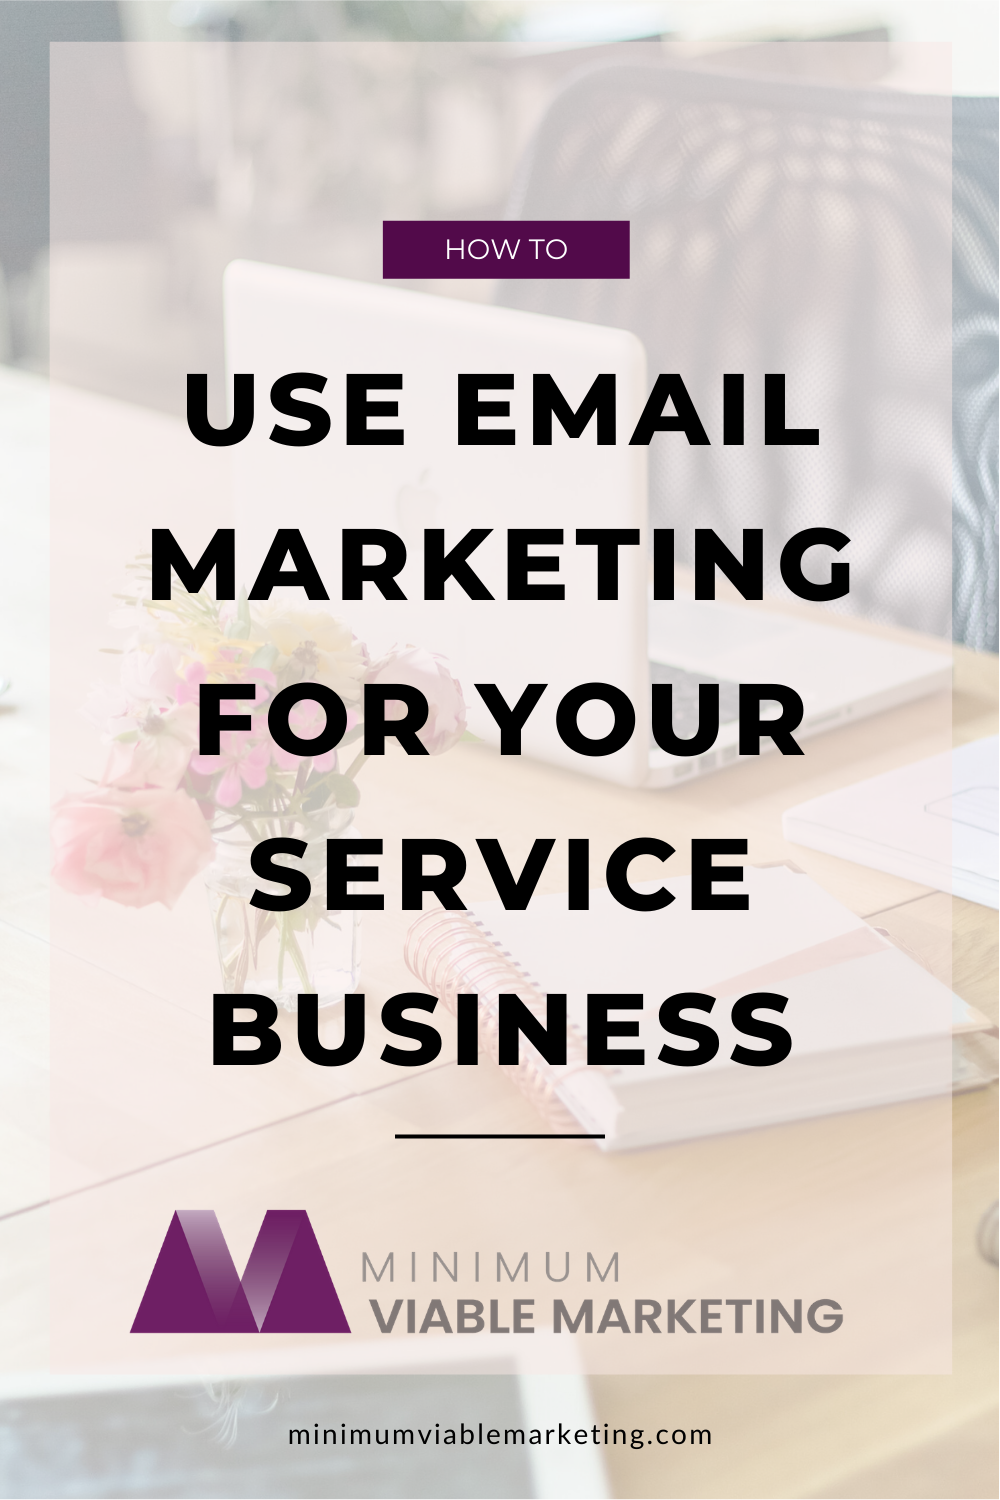 How to use email marketing for your service business